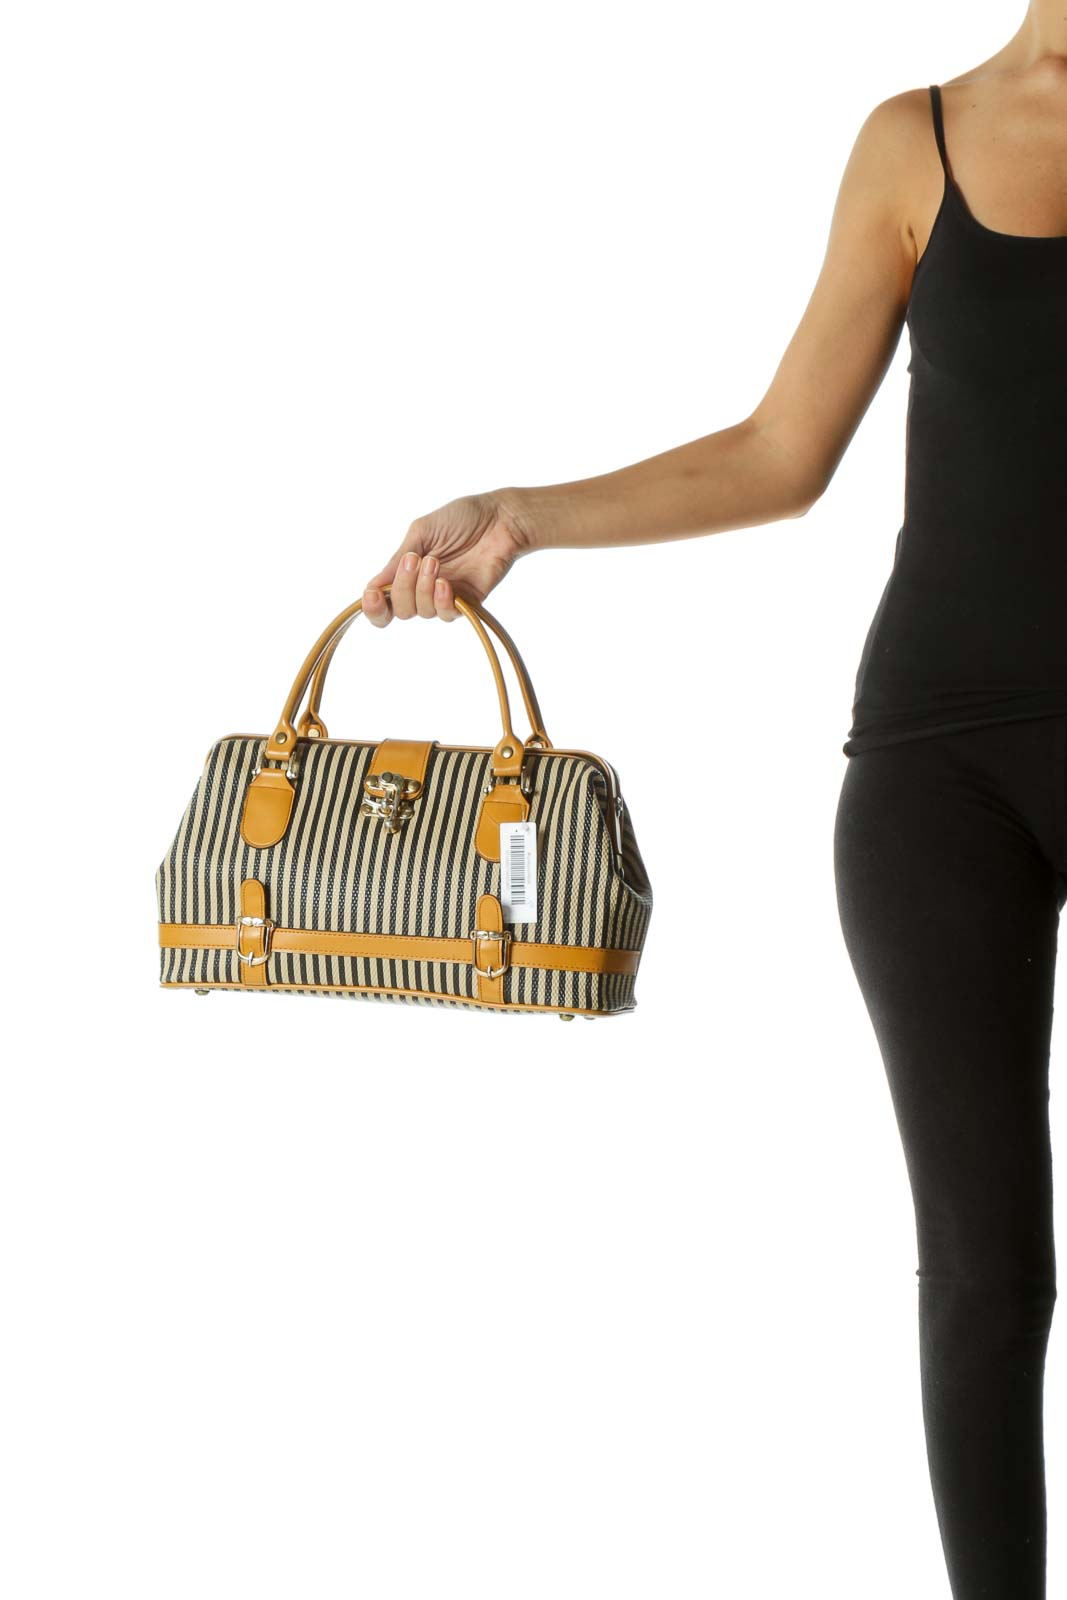 Beige and Black Striped Satchel